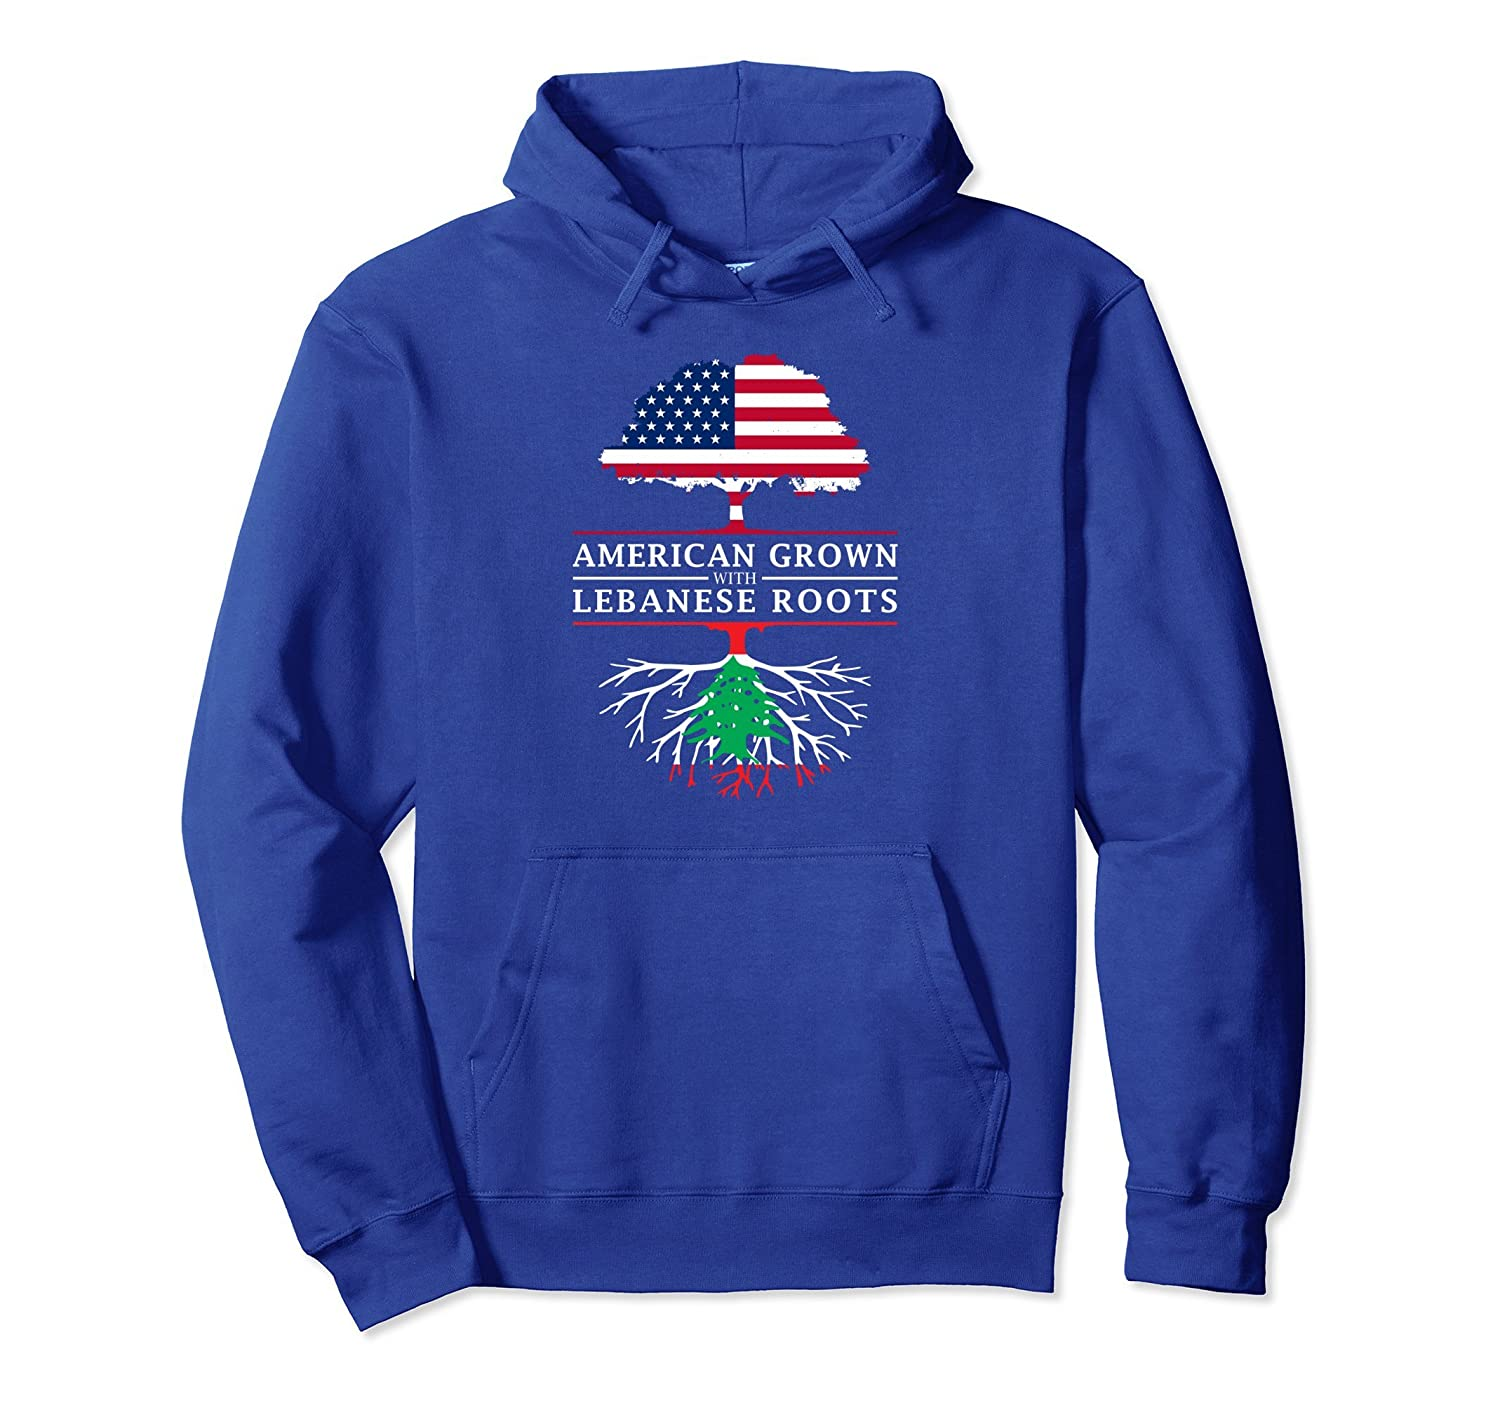 American Grown with Lebanese Roots - Lebanon Hoodie-ah my shirt one gift